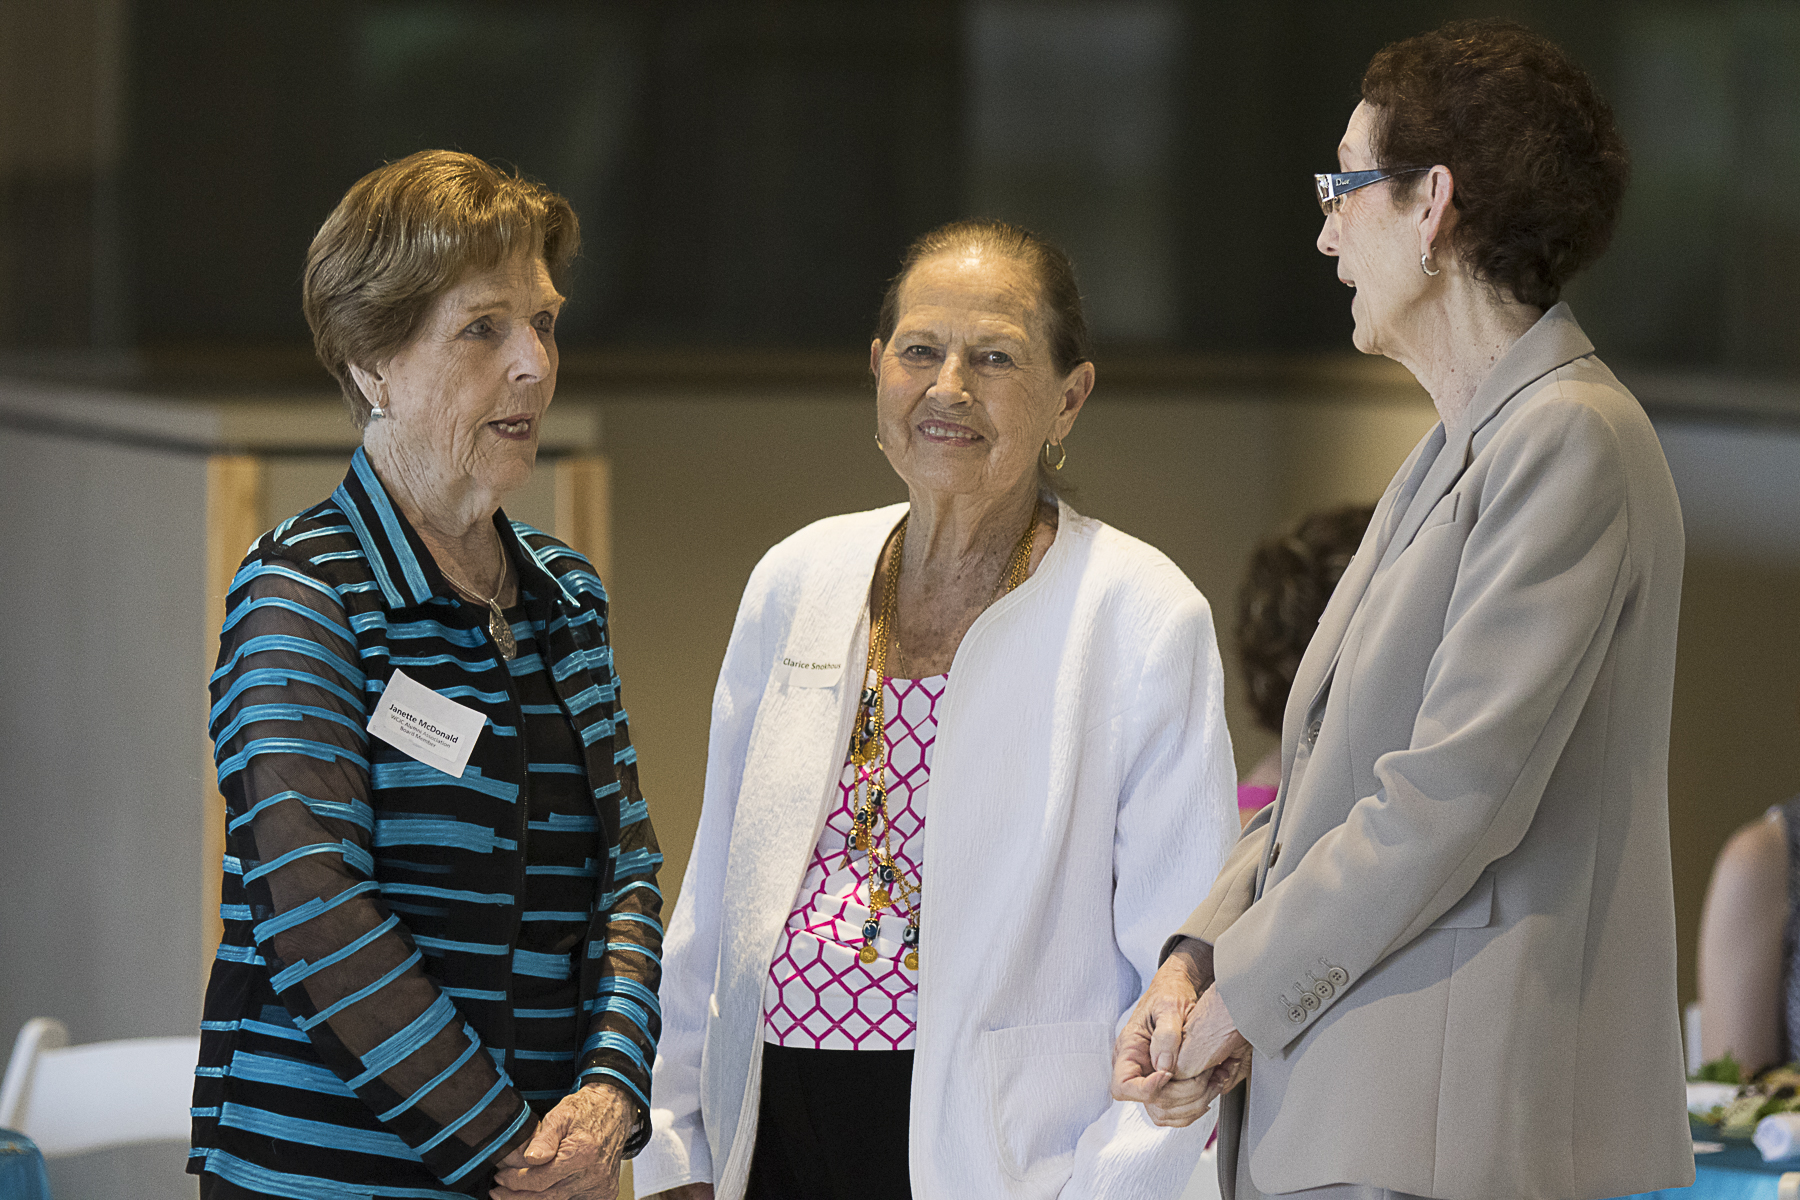 GIVING THANKS - WCJC Friends of the College event recognizes donors, scholarship recipients